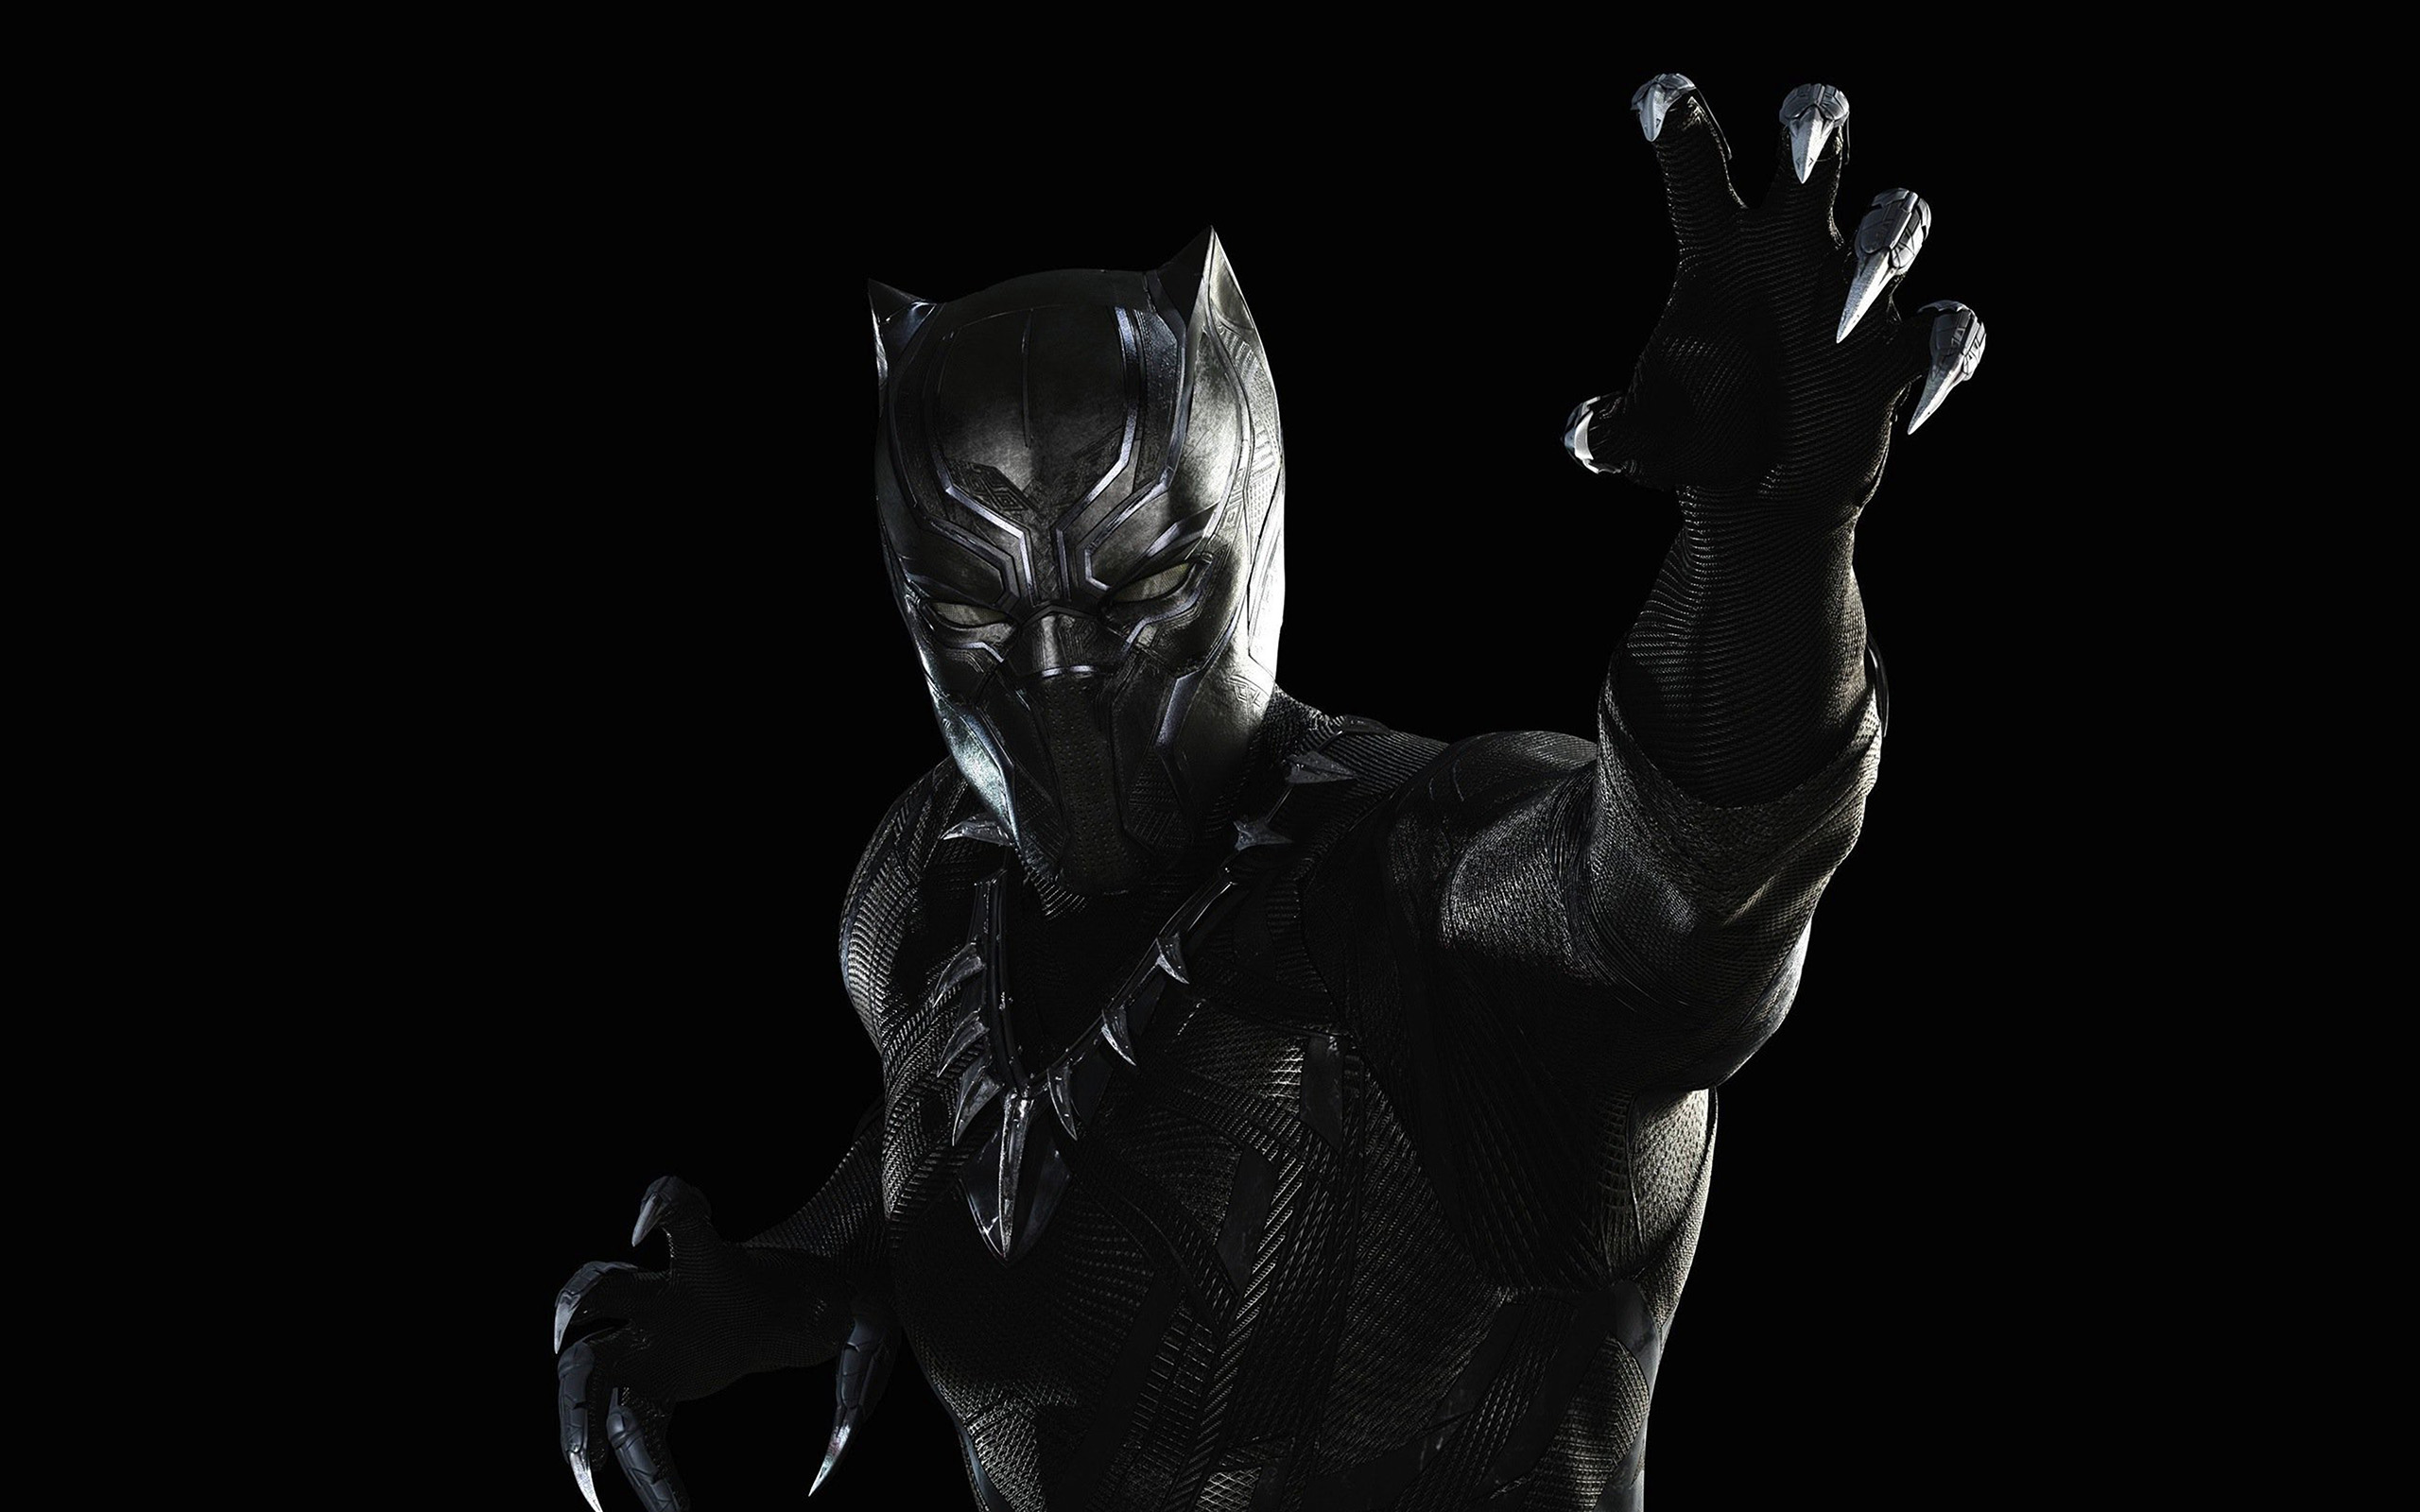 Black Panther Wallpaper Iphone X Black Panther Full Hd Wallpaper And